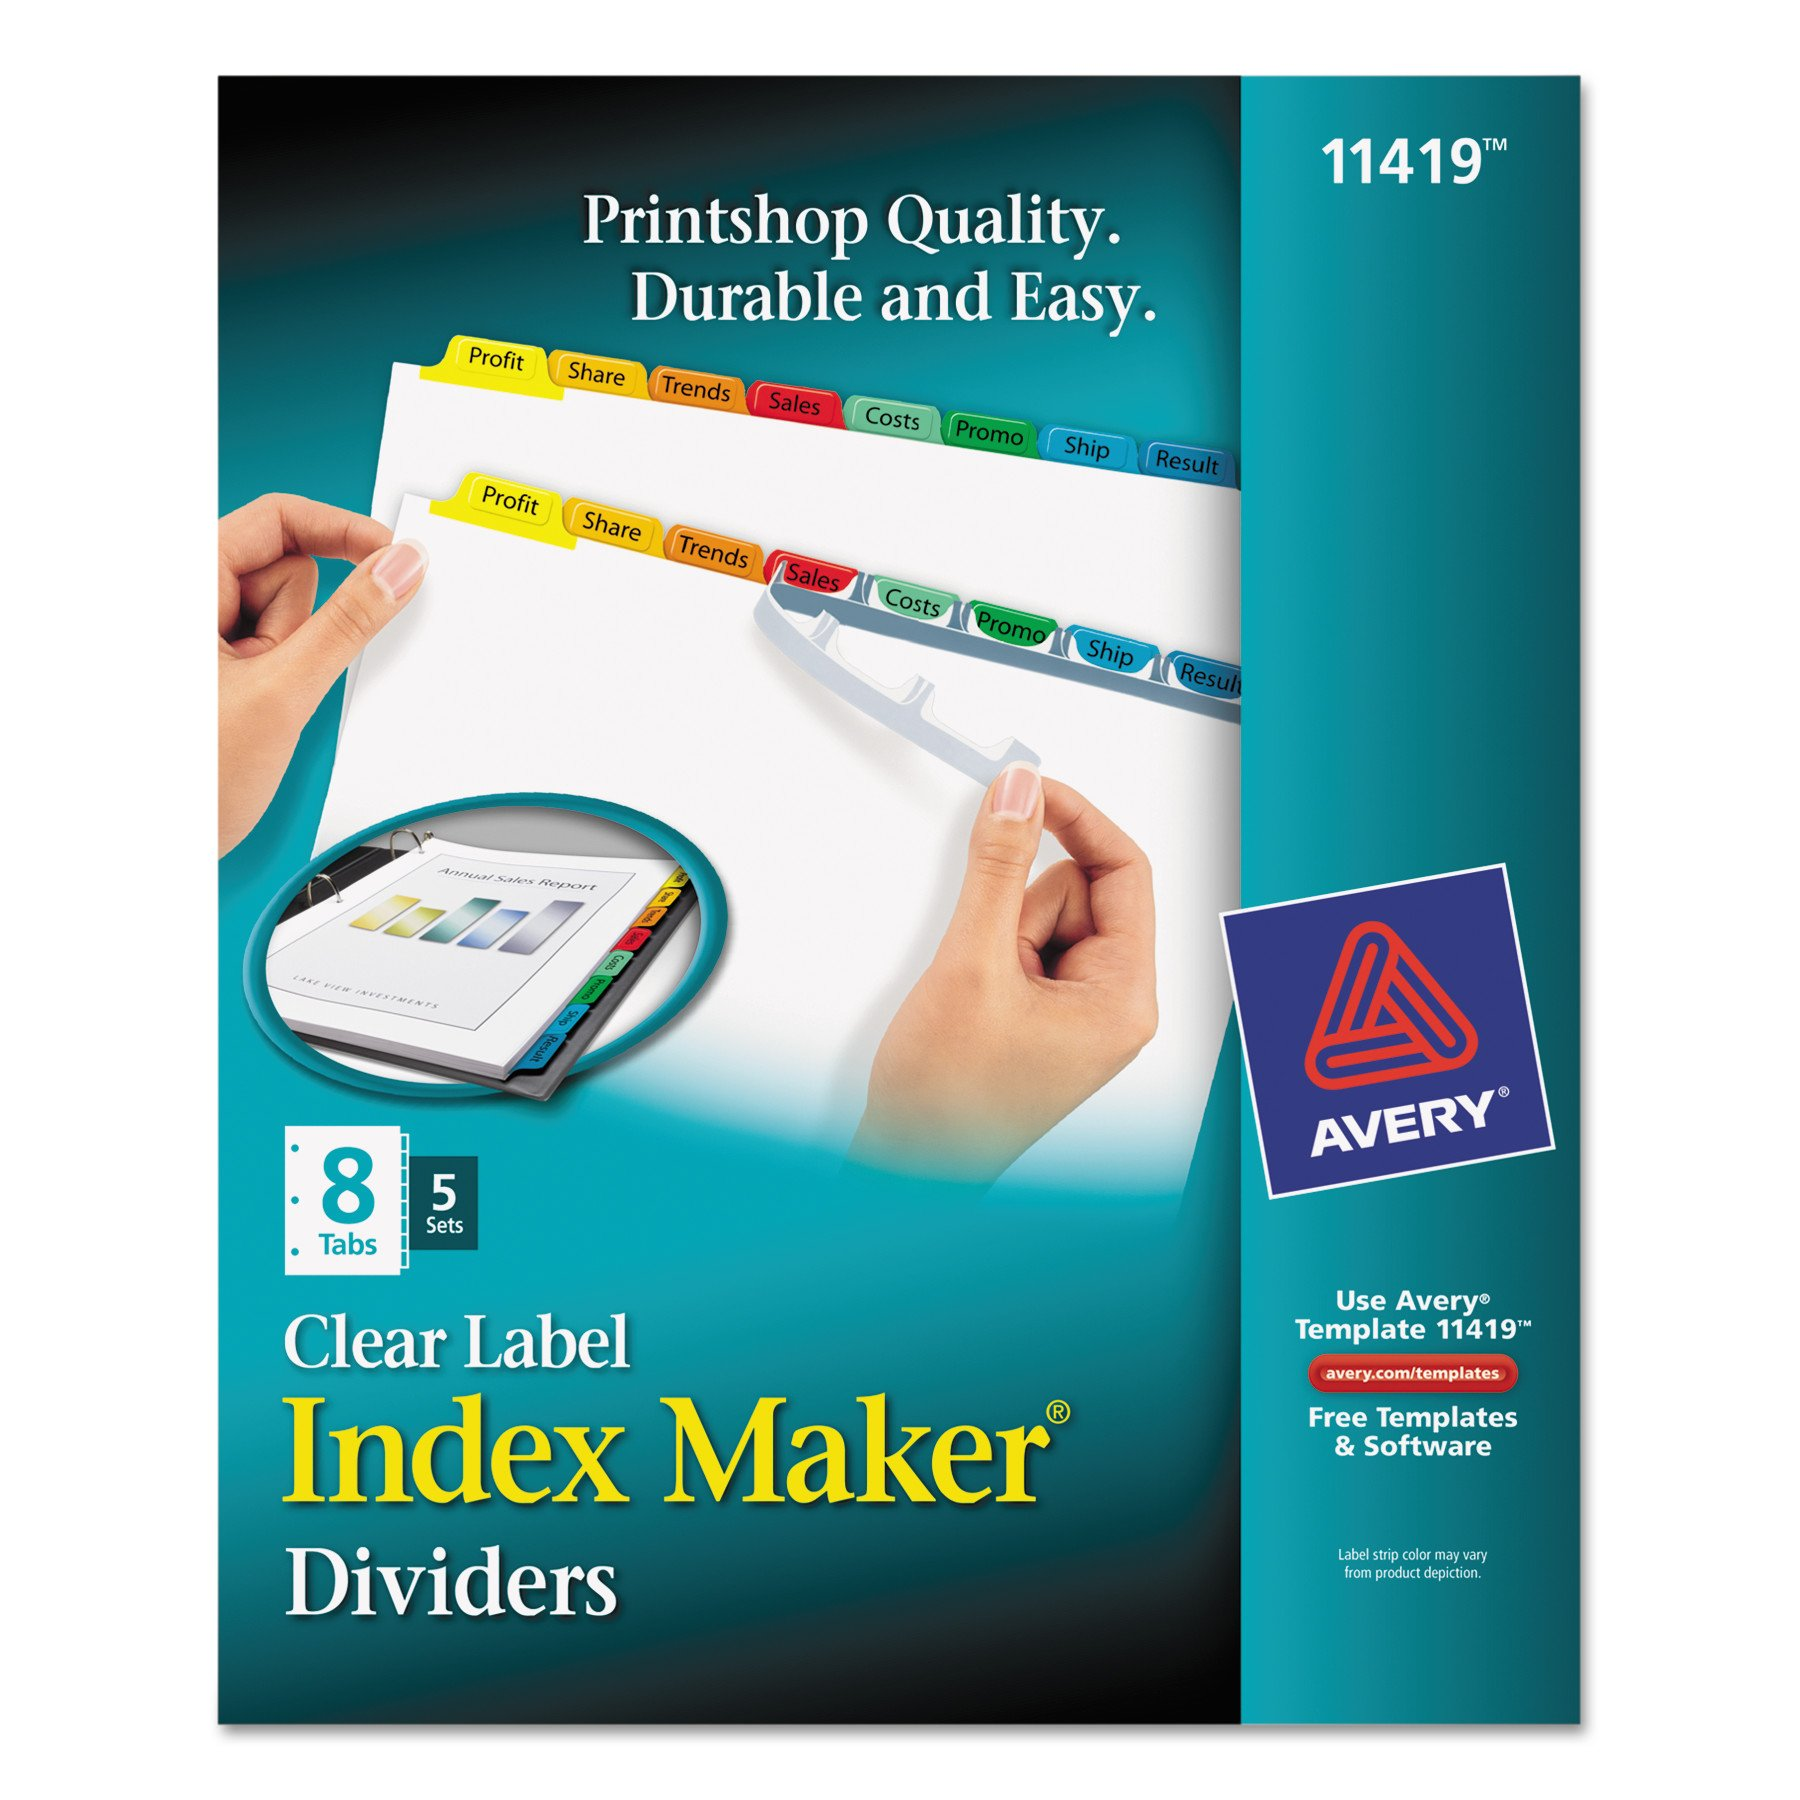 Avery Index Maker Label Dividers, Easy Apply Label Strip, 8-Tab, Clear, 5 Sets (11419)